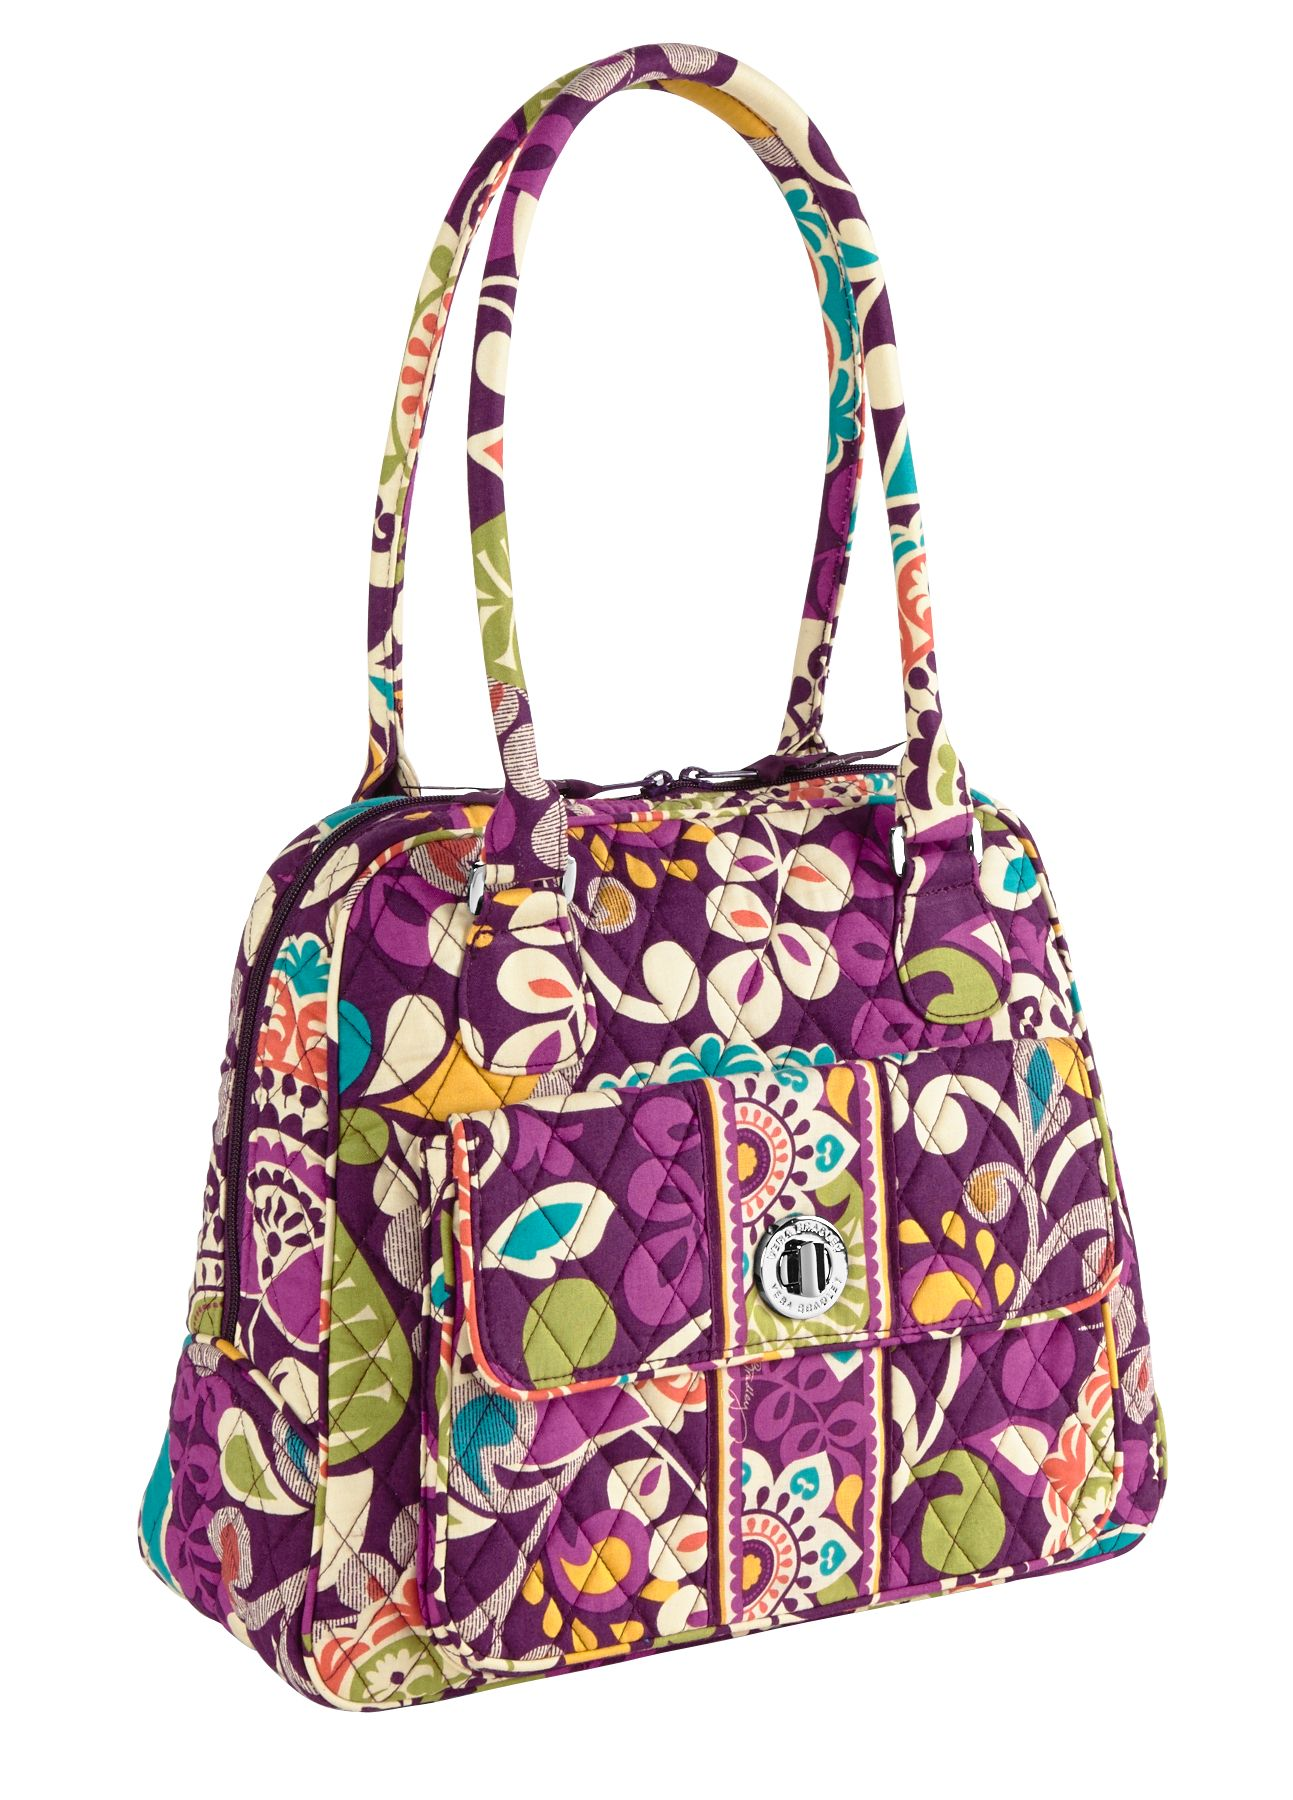 Vera Bradley Turn Lock Satchel in Plum Crazy